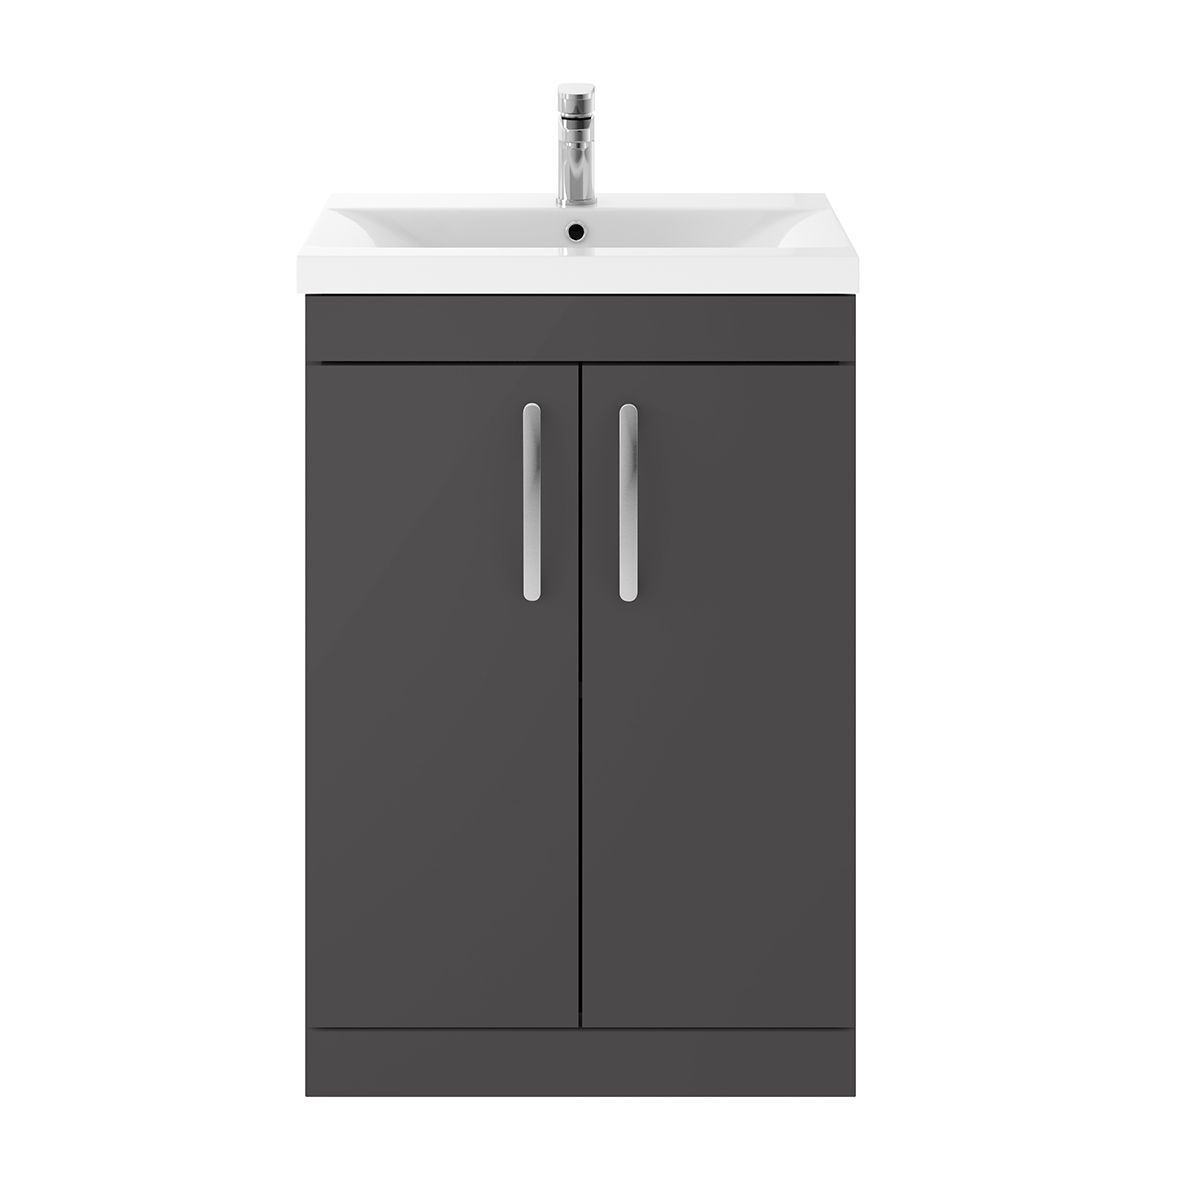 Nuie Athena Gloss Grey 2 Drawer Floor Standing Unit 600mm